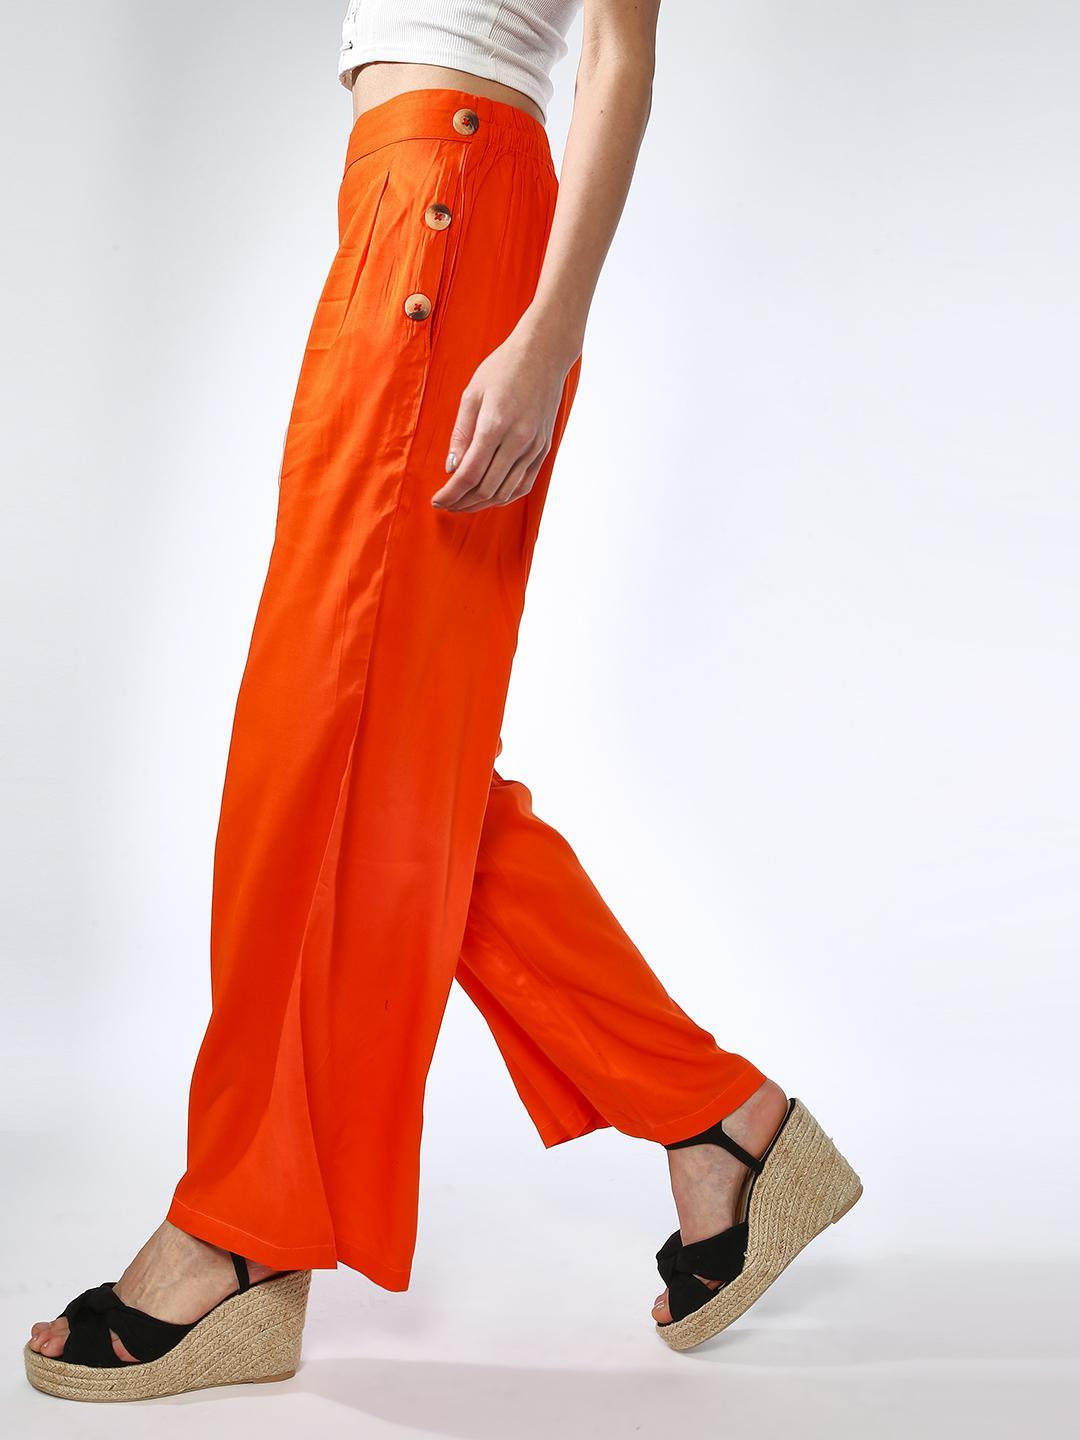 Oxolloxo Orange Pleated Button Detail Trousers 1